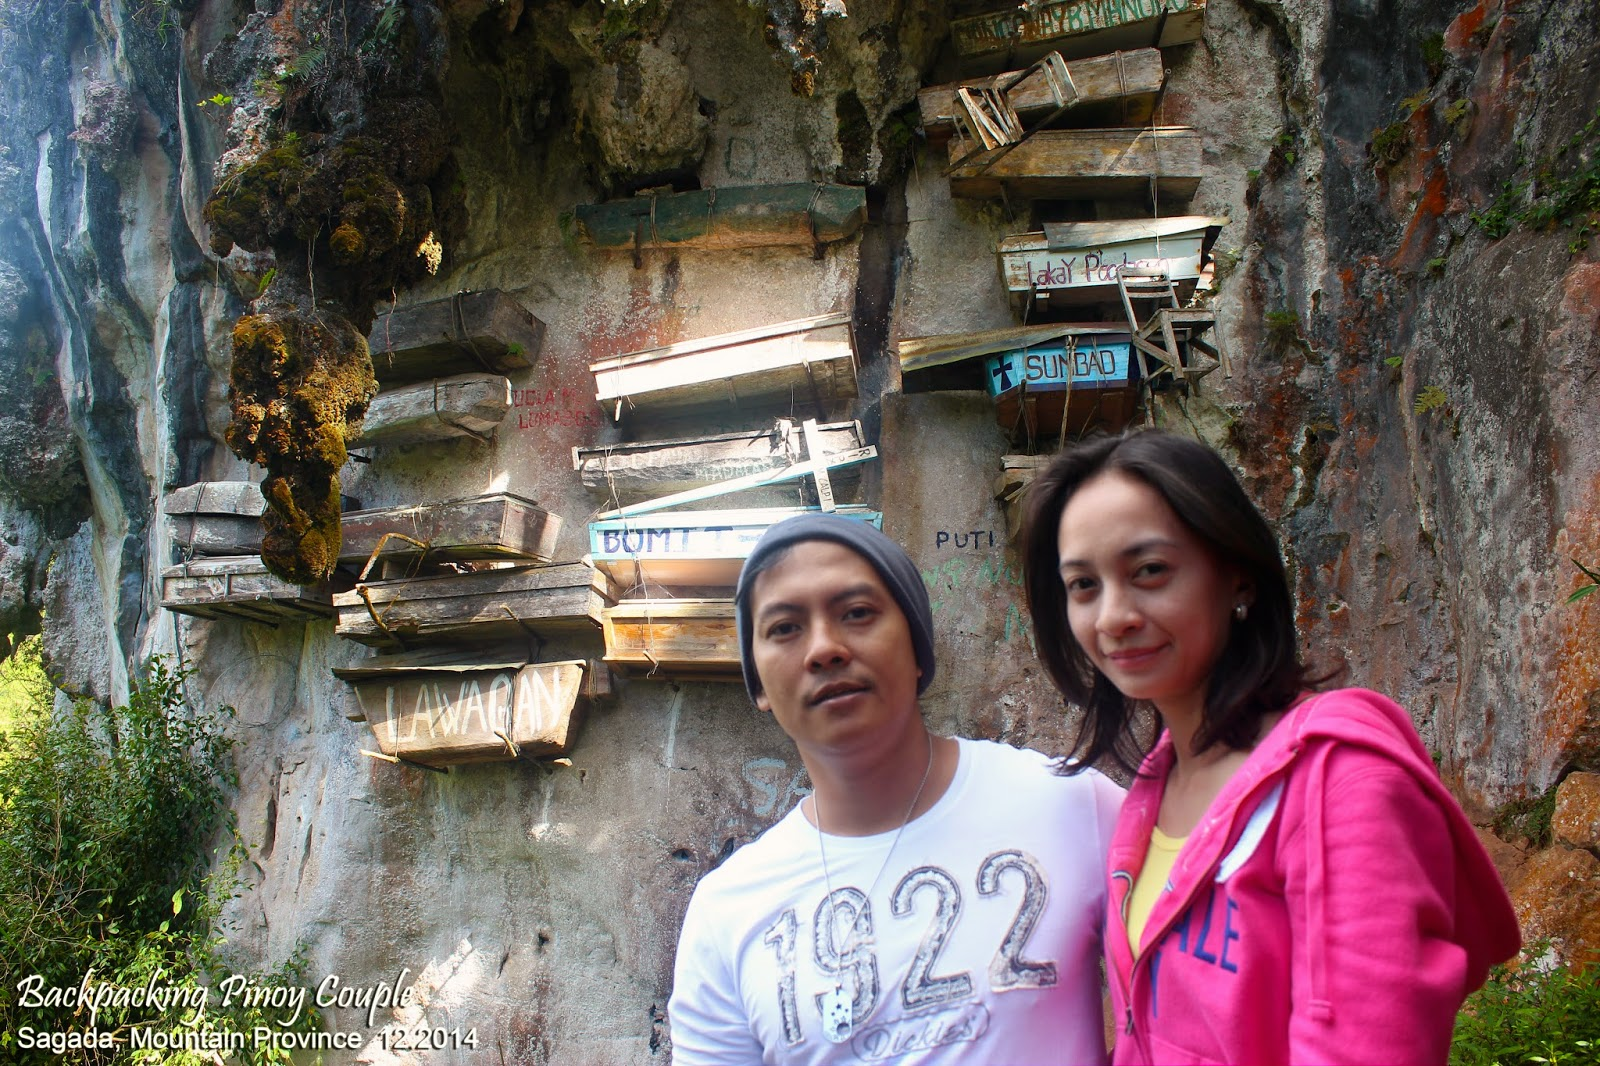 Backpacking Pinoy Couple, Sagada, Mountain Province, Philippines, Echo Valley, Hanging Coffins